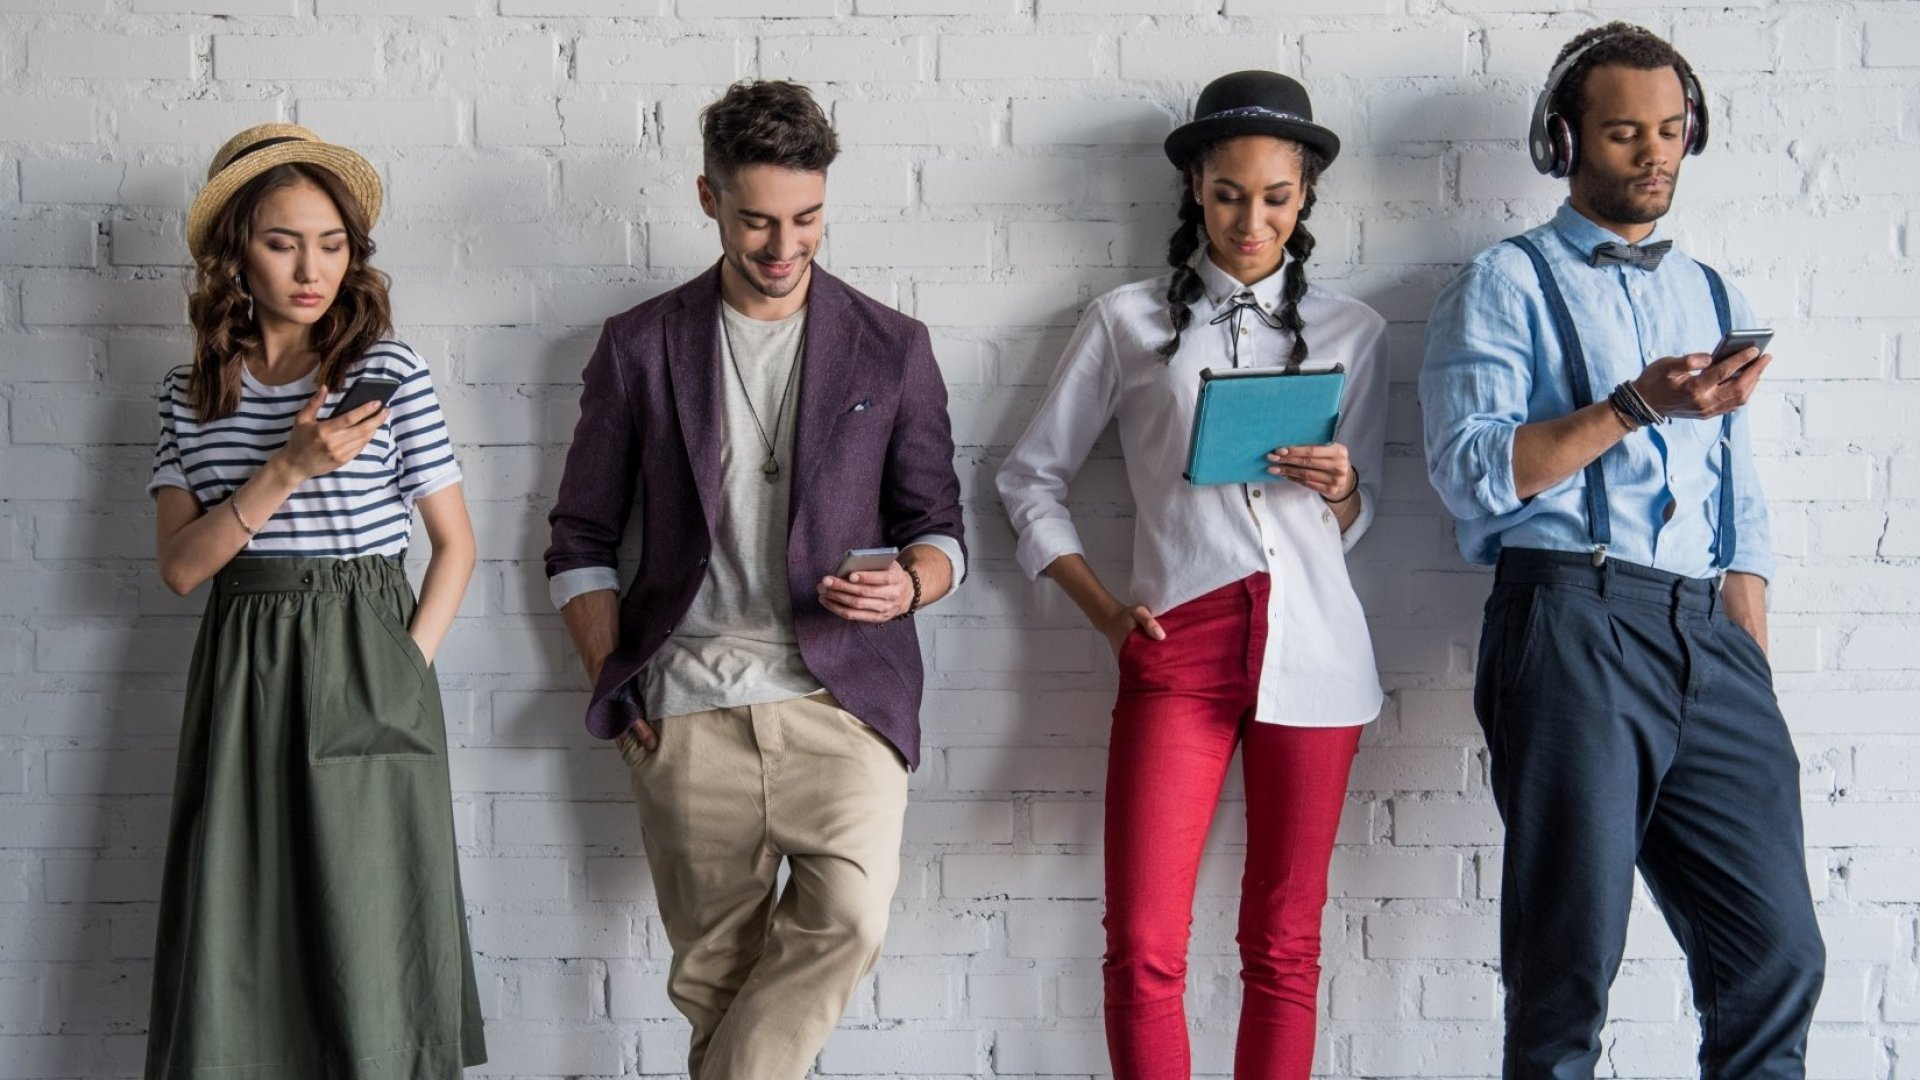 What's Really Happening With Workplace Dress Codes? (And How Will They Impact You?)